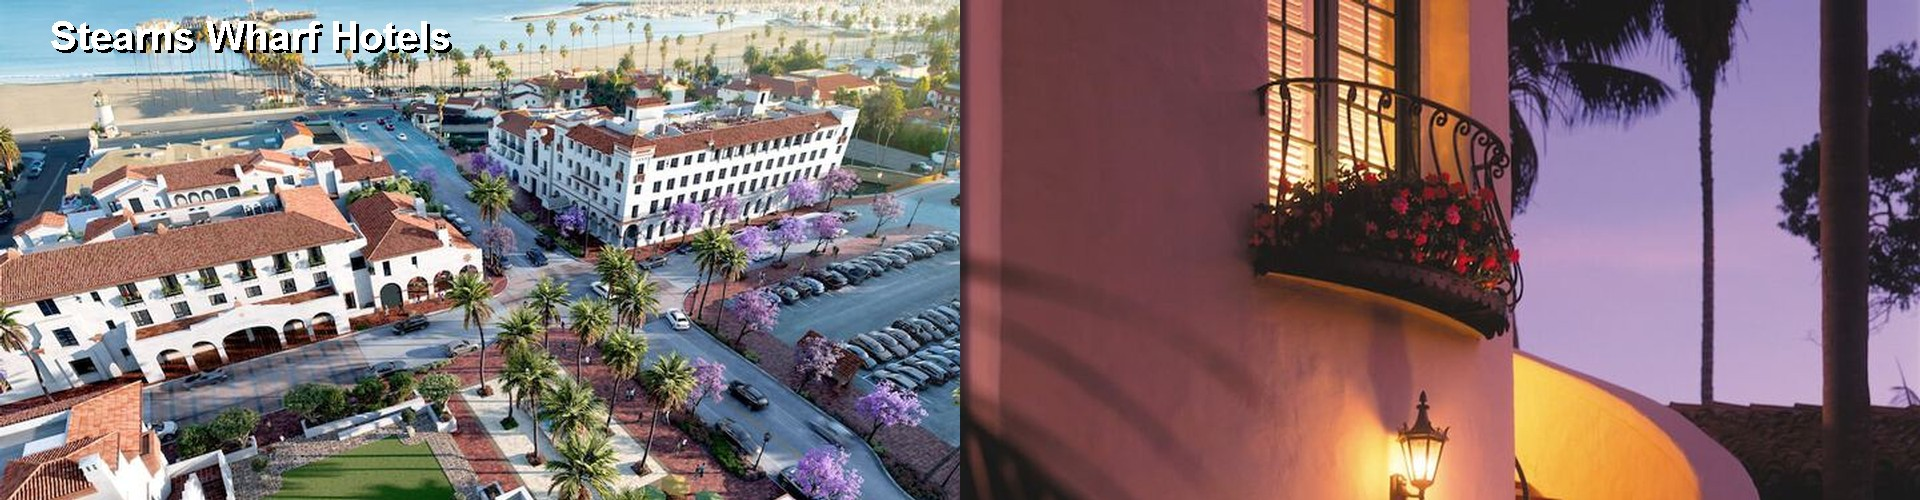 5 Best Hotels near Stearns Wharf